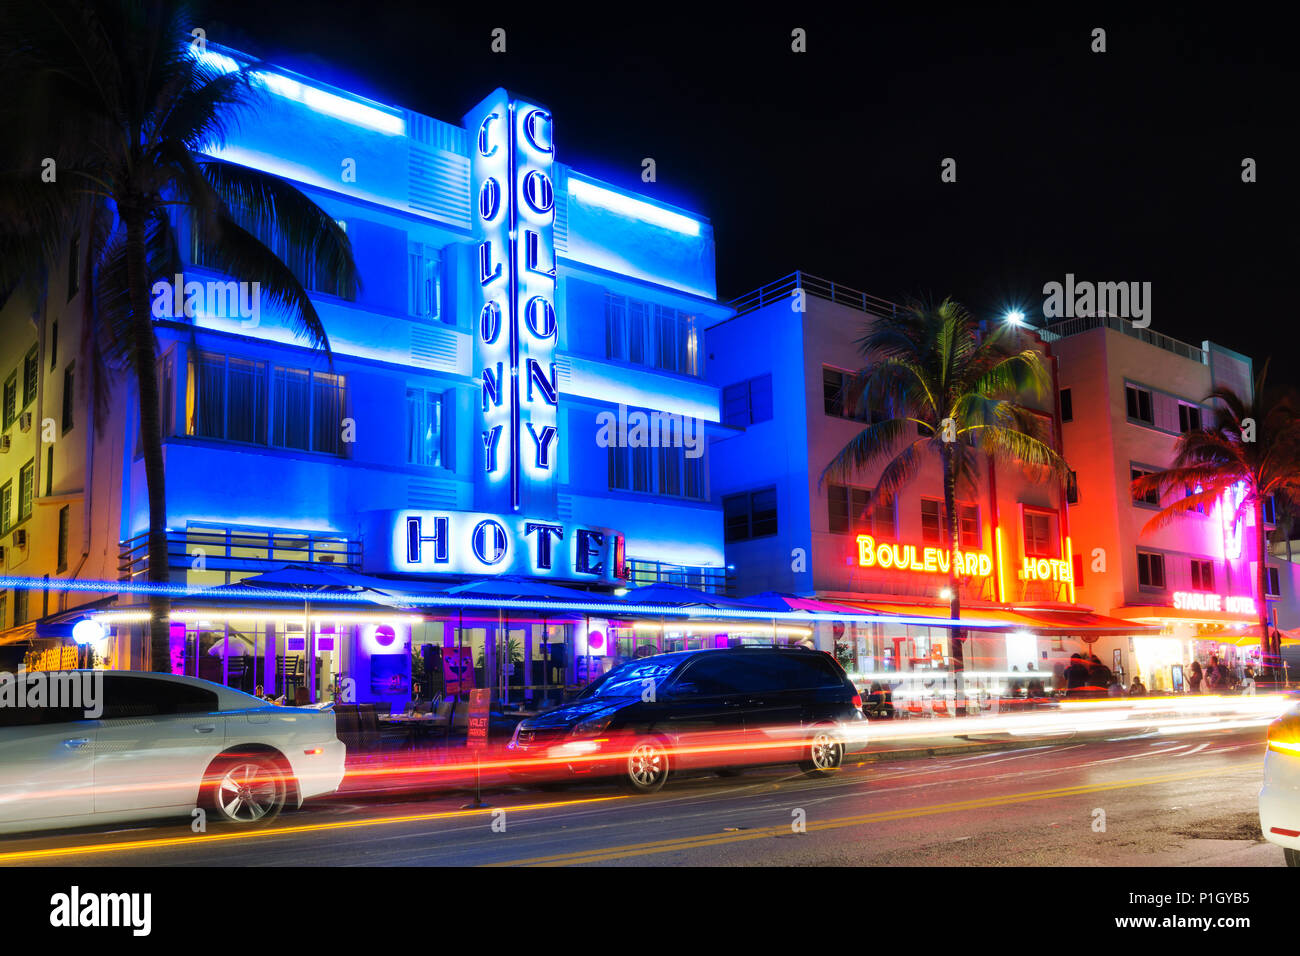 MIAMI BEACH, FLORIDA - JUNE 12, 2018: famous art deco district of Ocean Drive in South Beach by night, the Colony Hotel. Miami, USA - Stock Image